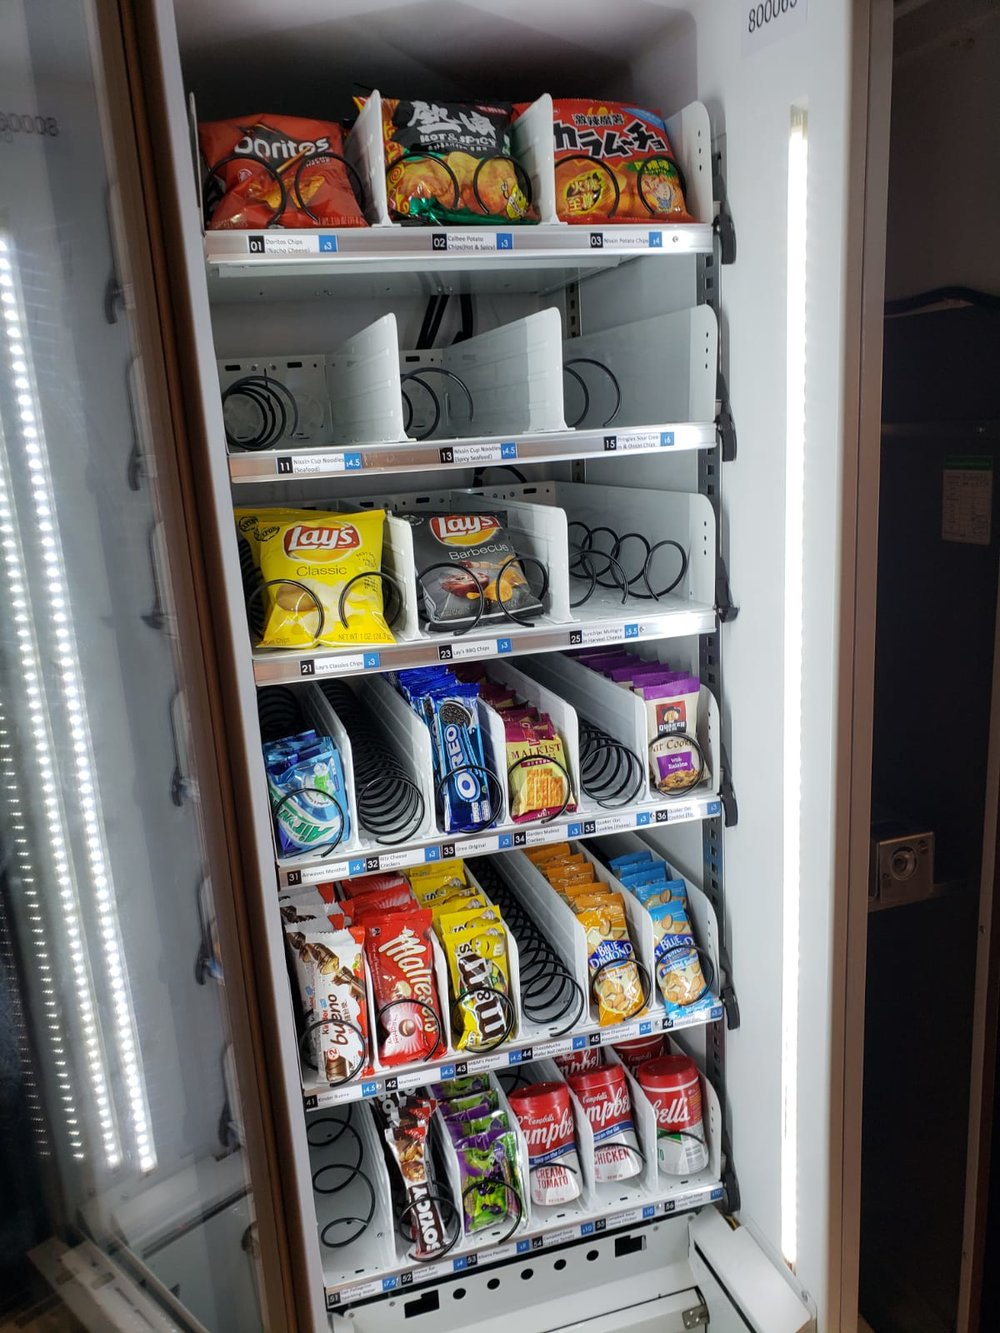 Freshup, vending machine hk, interactive, food, beverage, smart retail, convenient, vending services, professional, corporations, SCMP